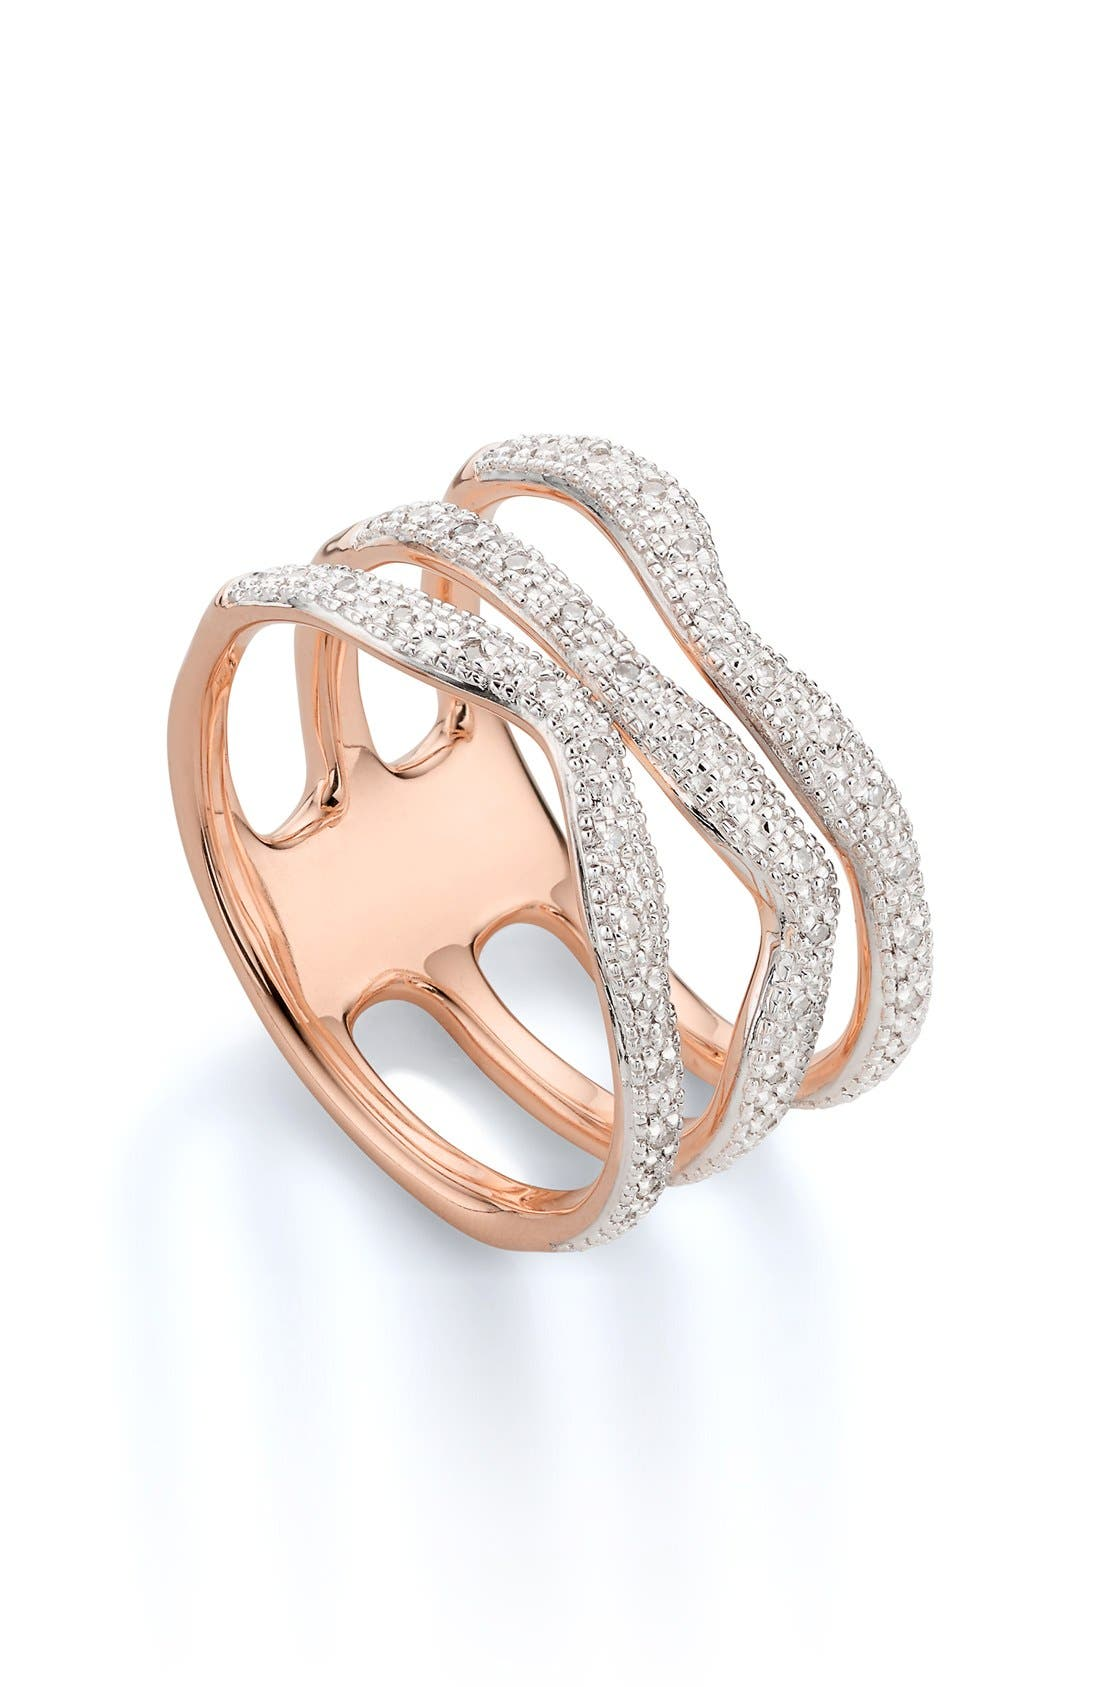 Monica Vinader 'Riva' Three Band Diamond Ring